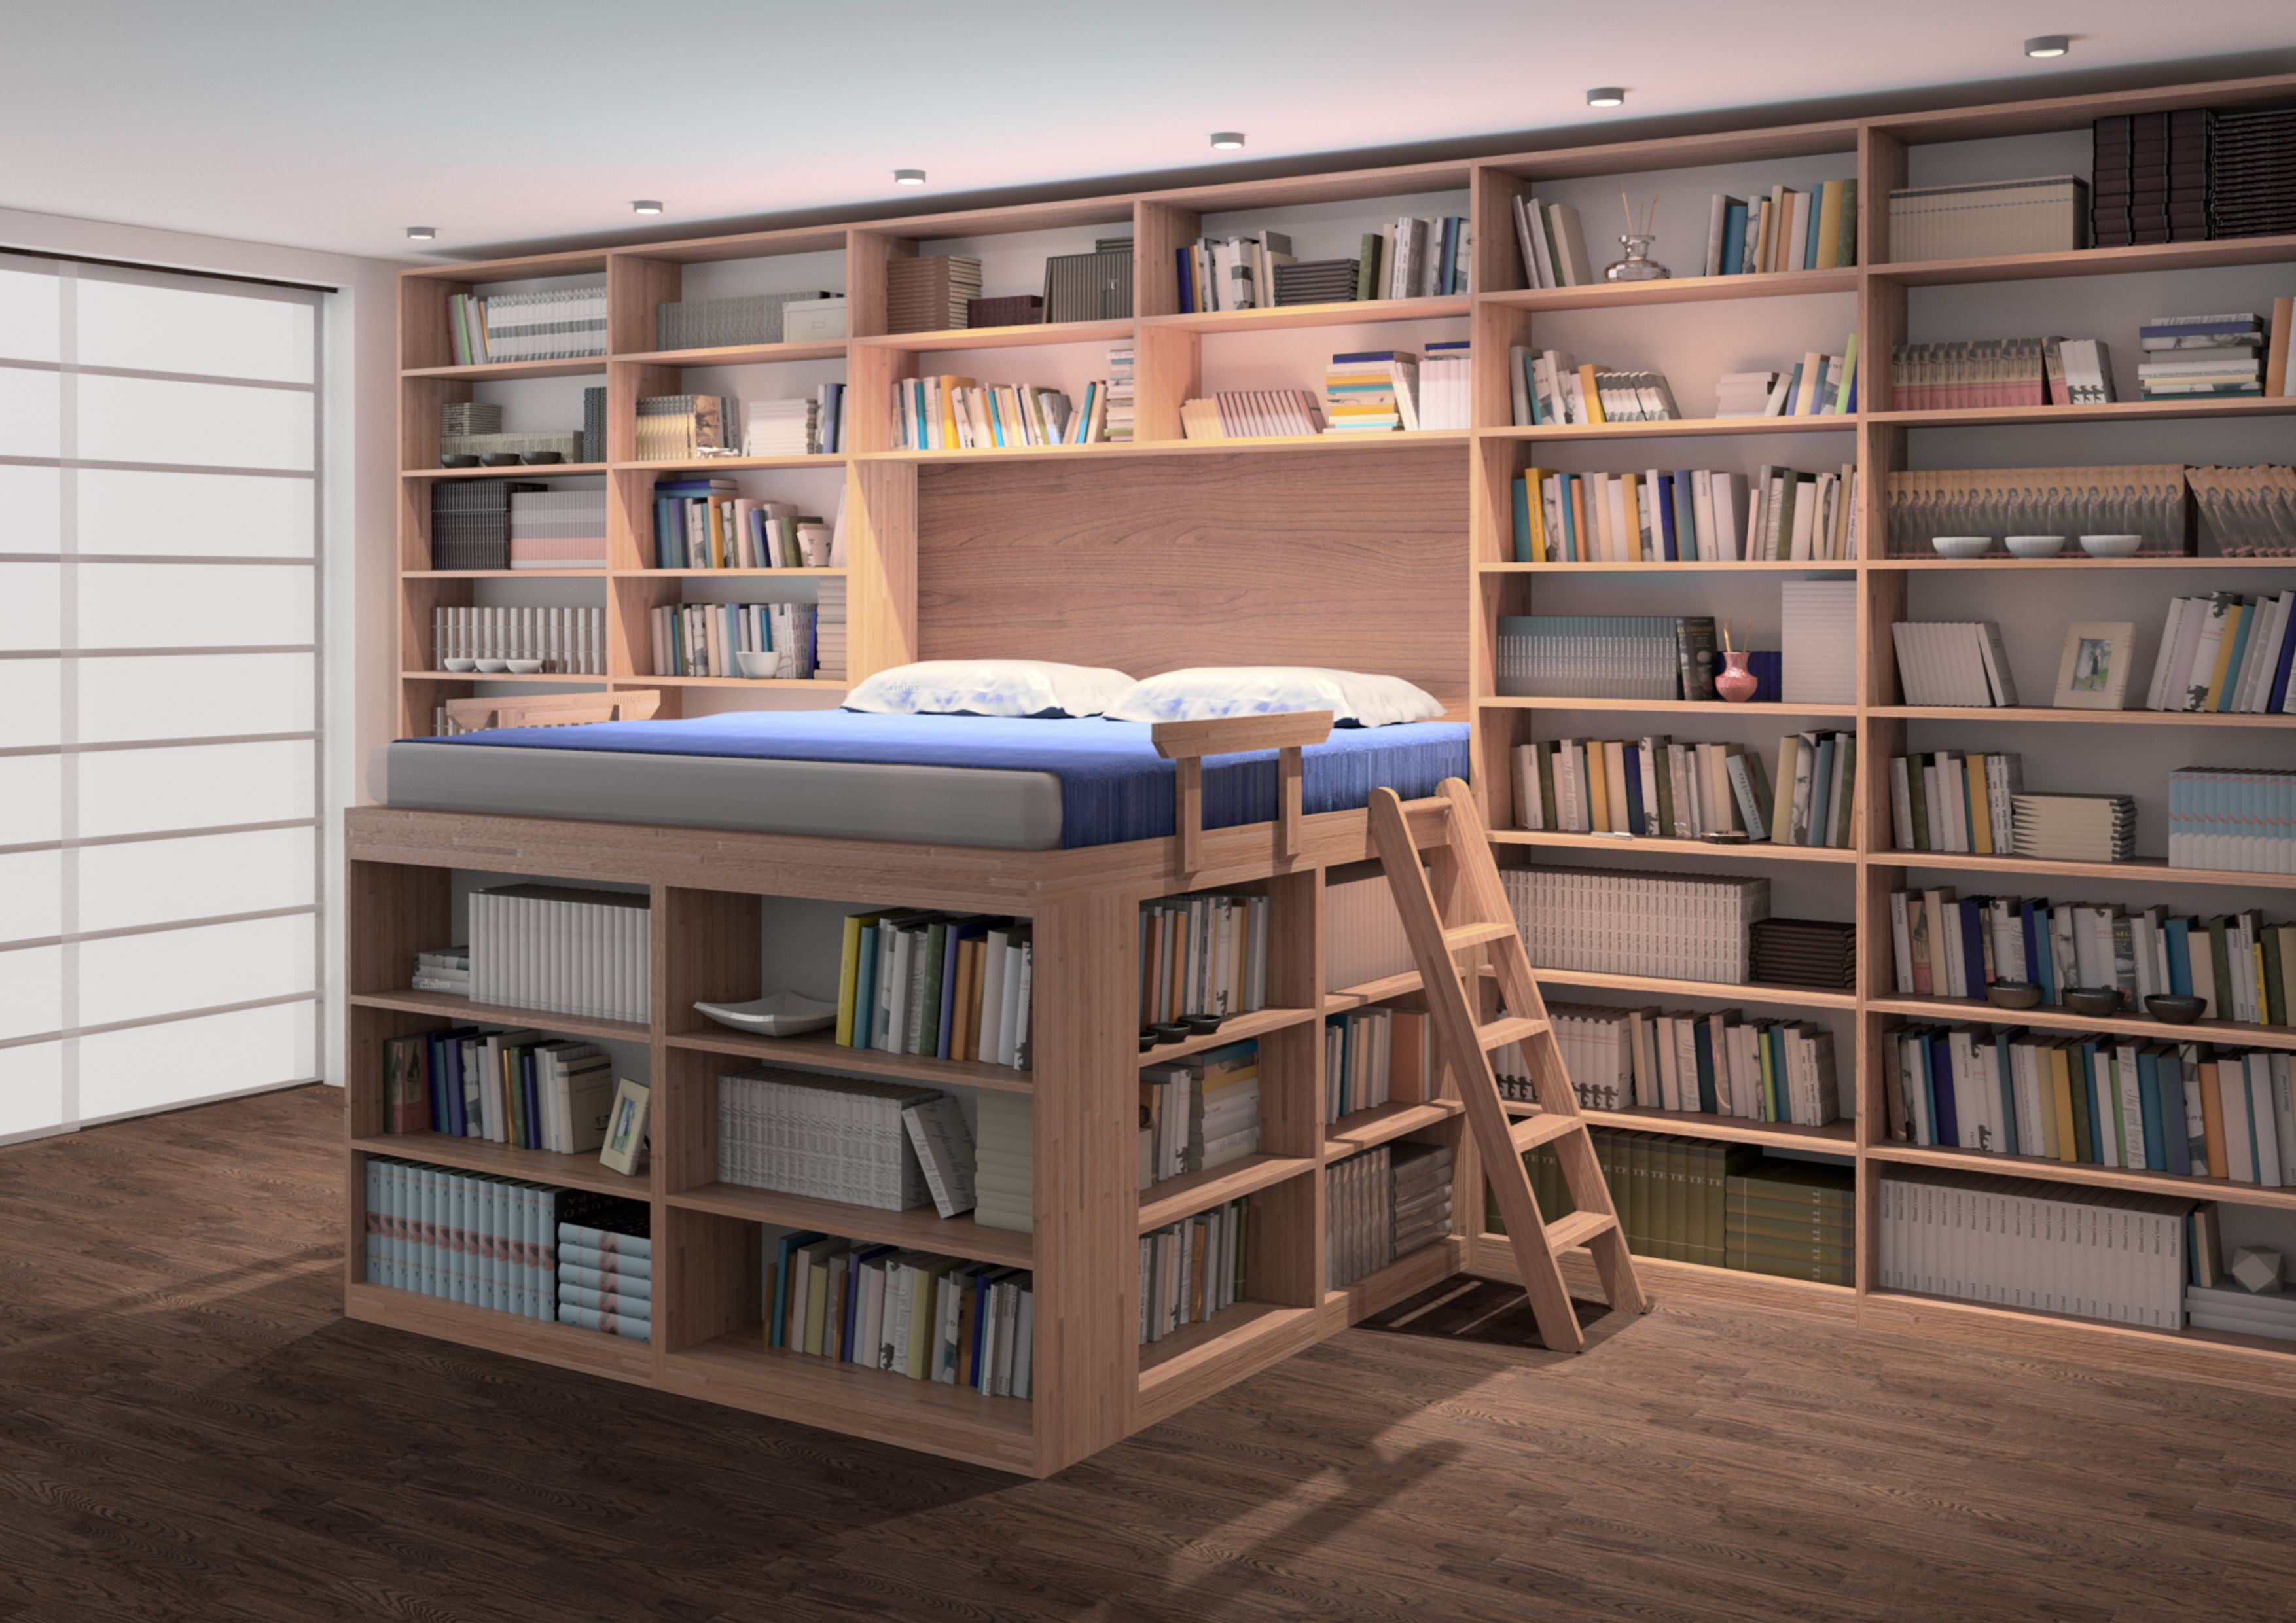 Space Saving Beds Designed to Increase Your Storage